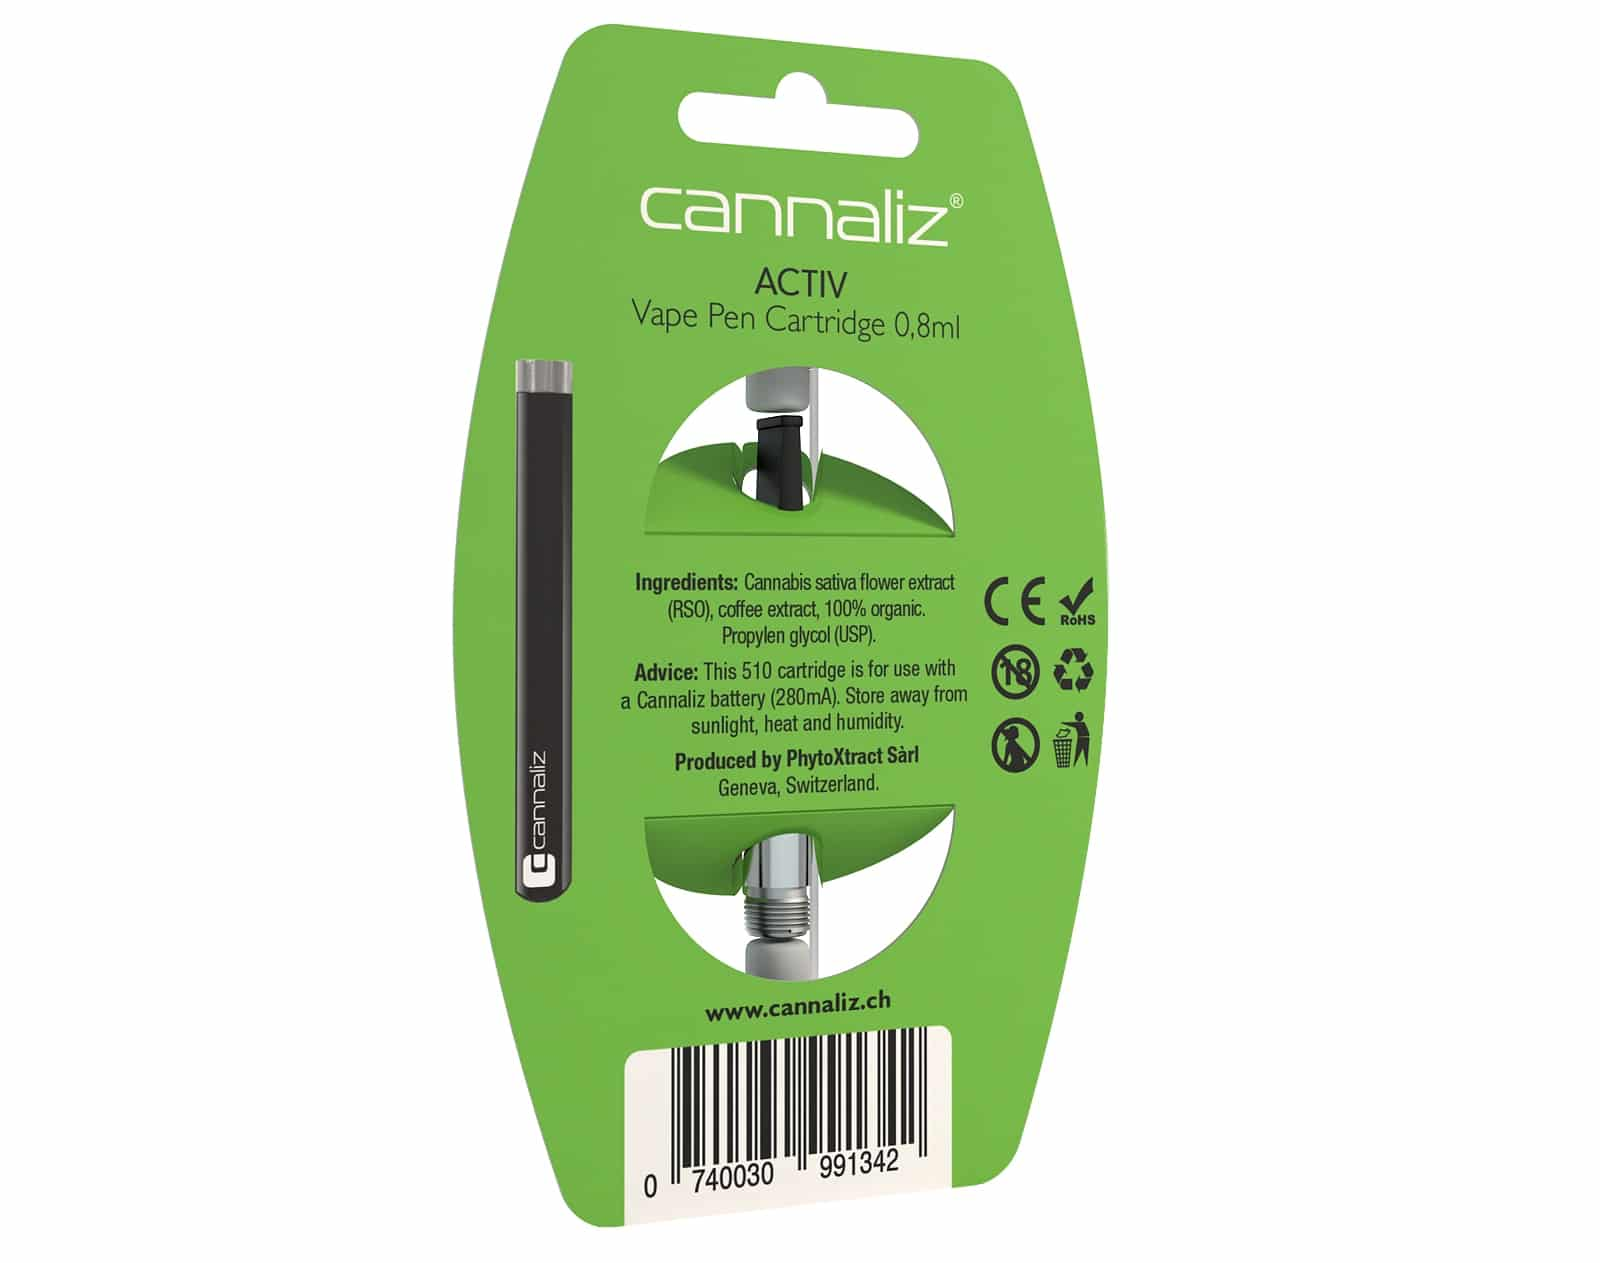 Cannaliz E-Cigarette ACTIV back